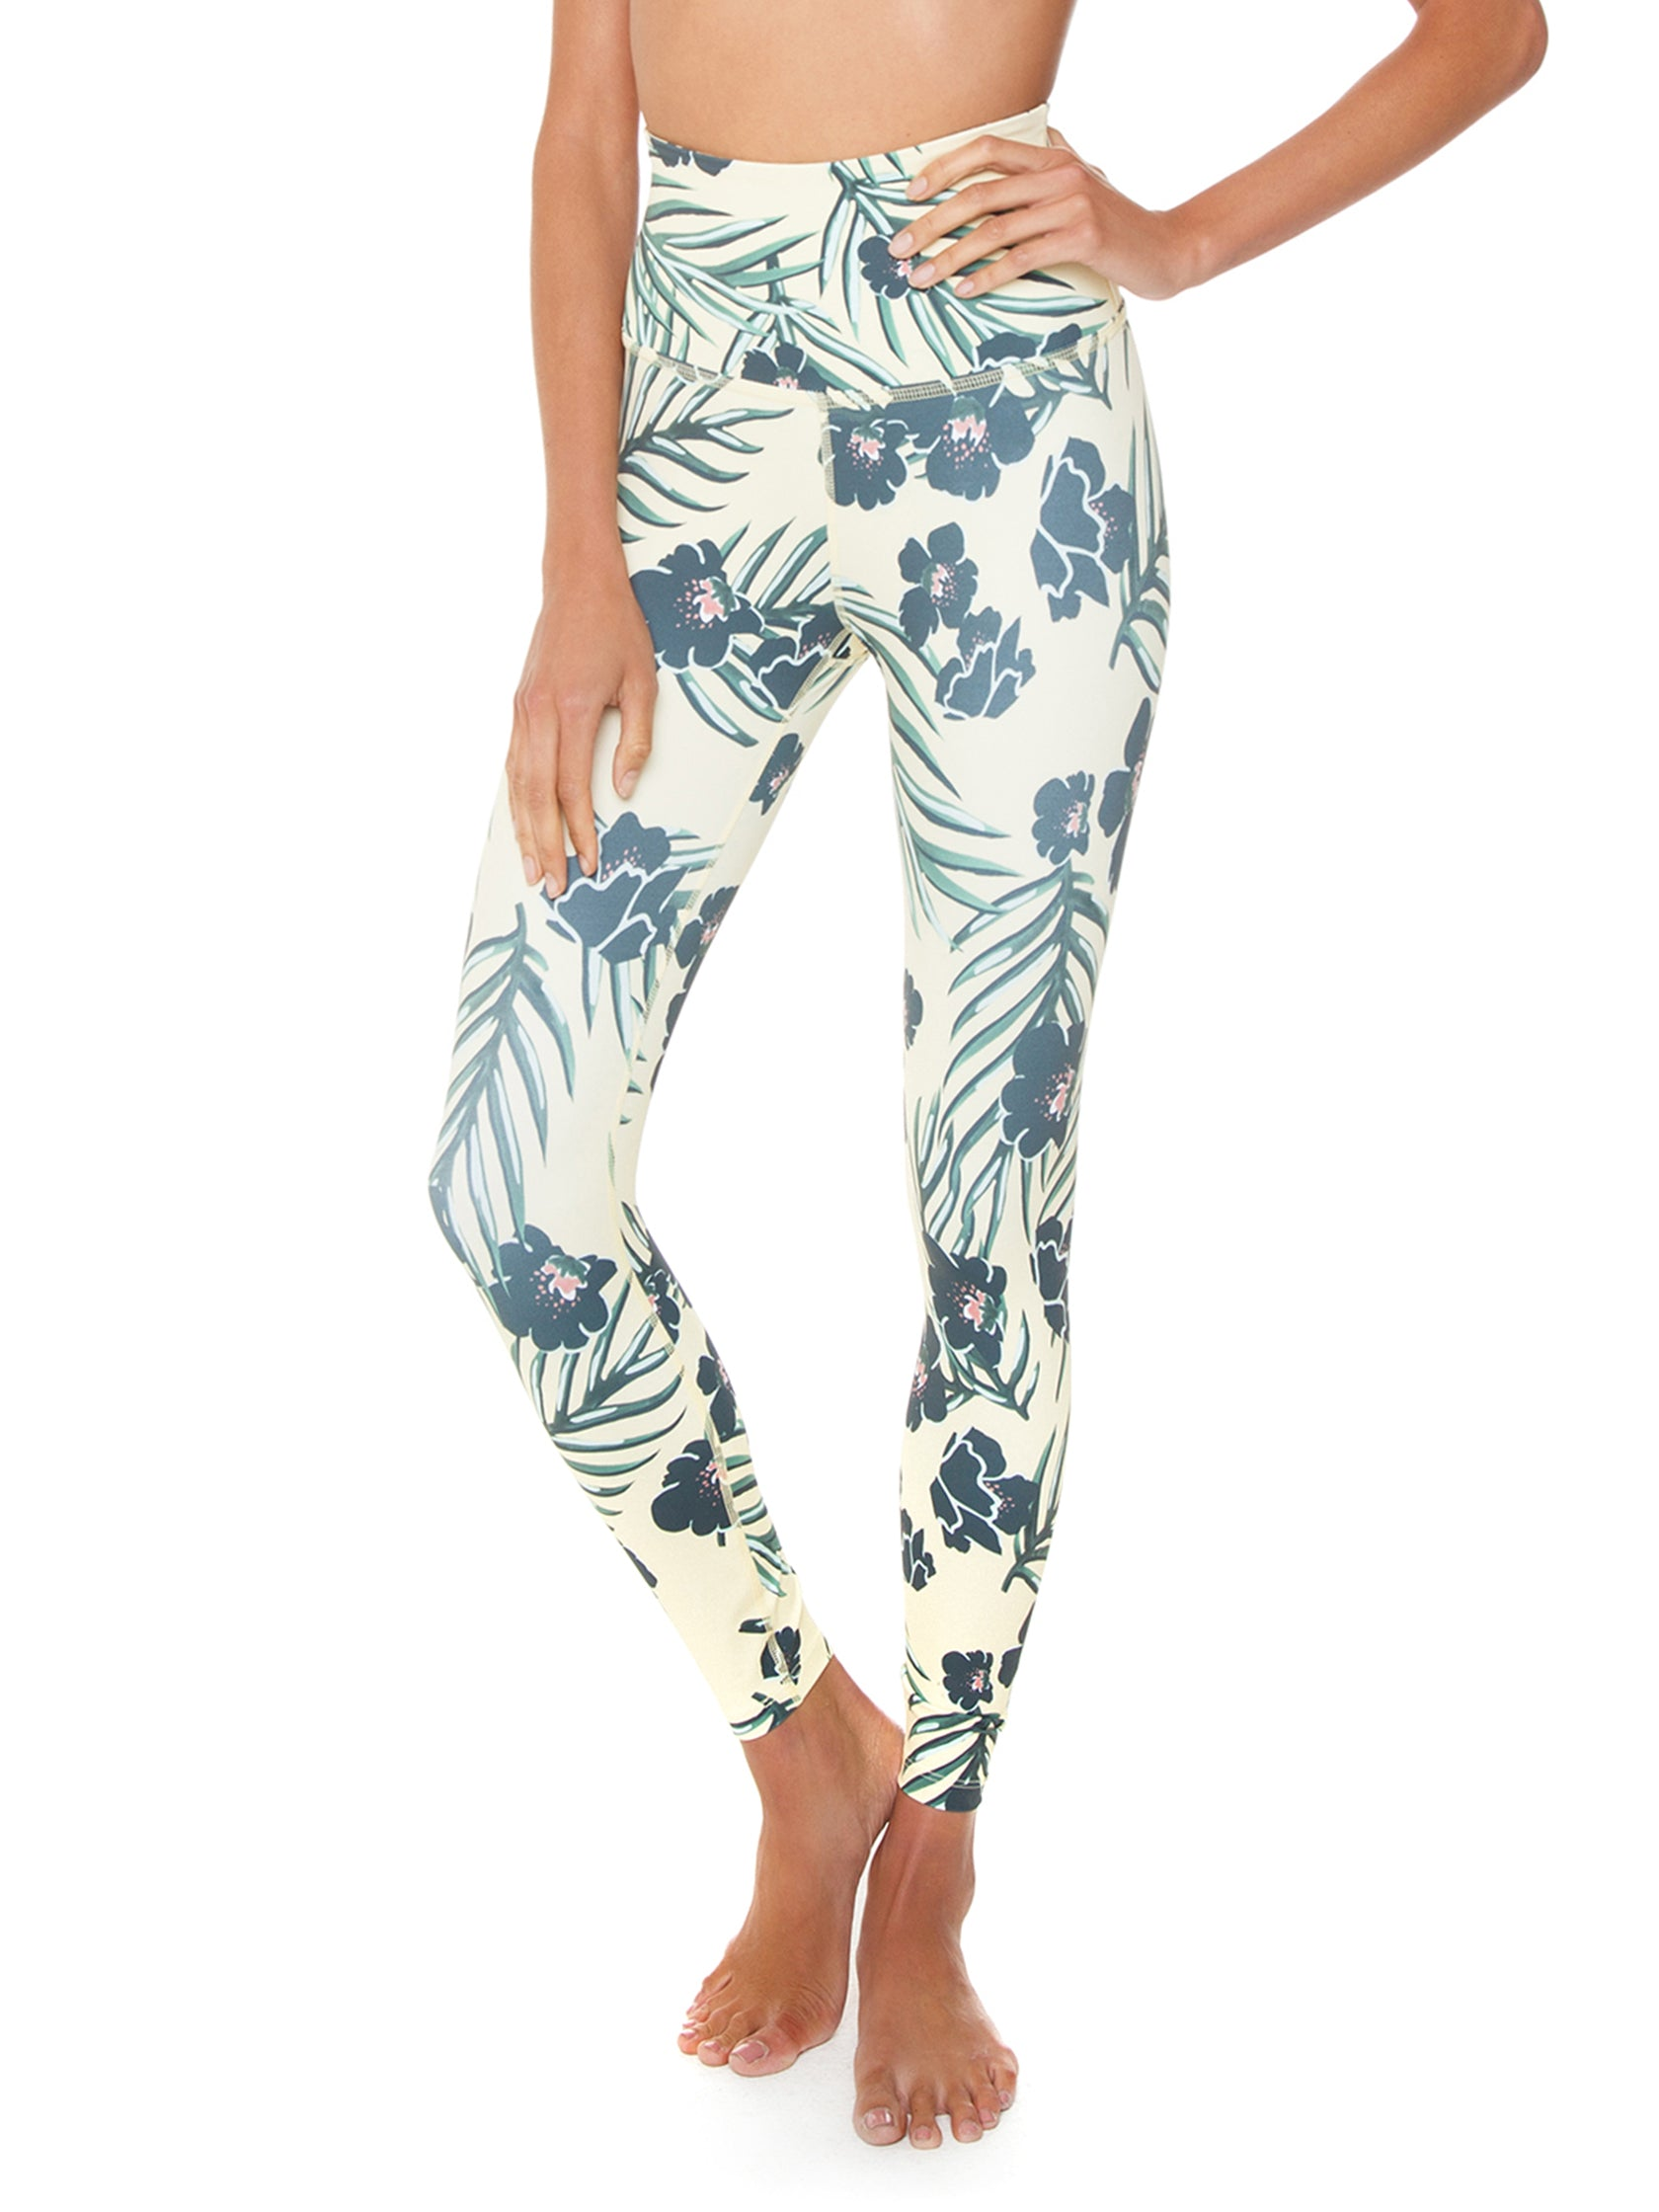 fdbcf190bd Girl outfit in a leggings rental from BEYOND YOGA called Olympus Floral  Sunrise High Waisted Midi